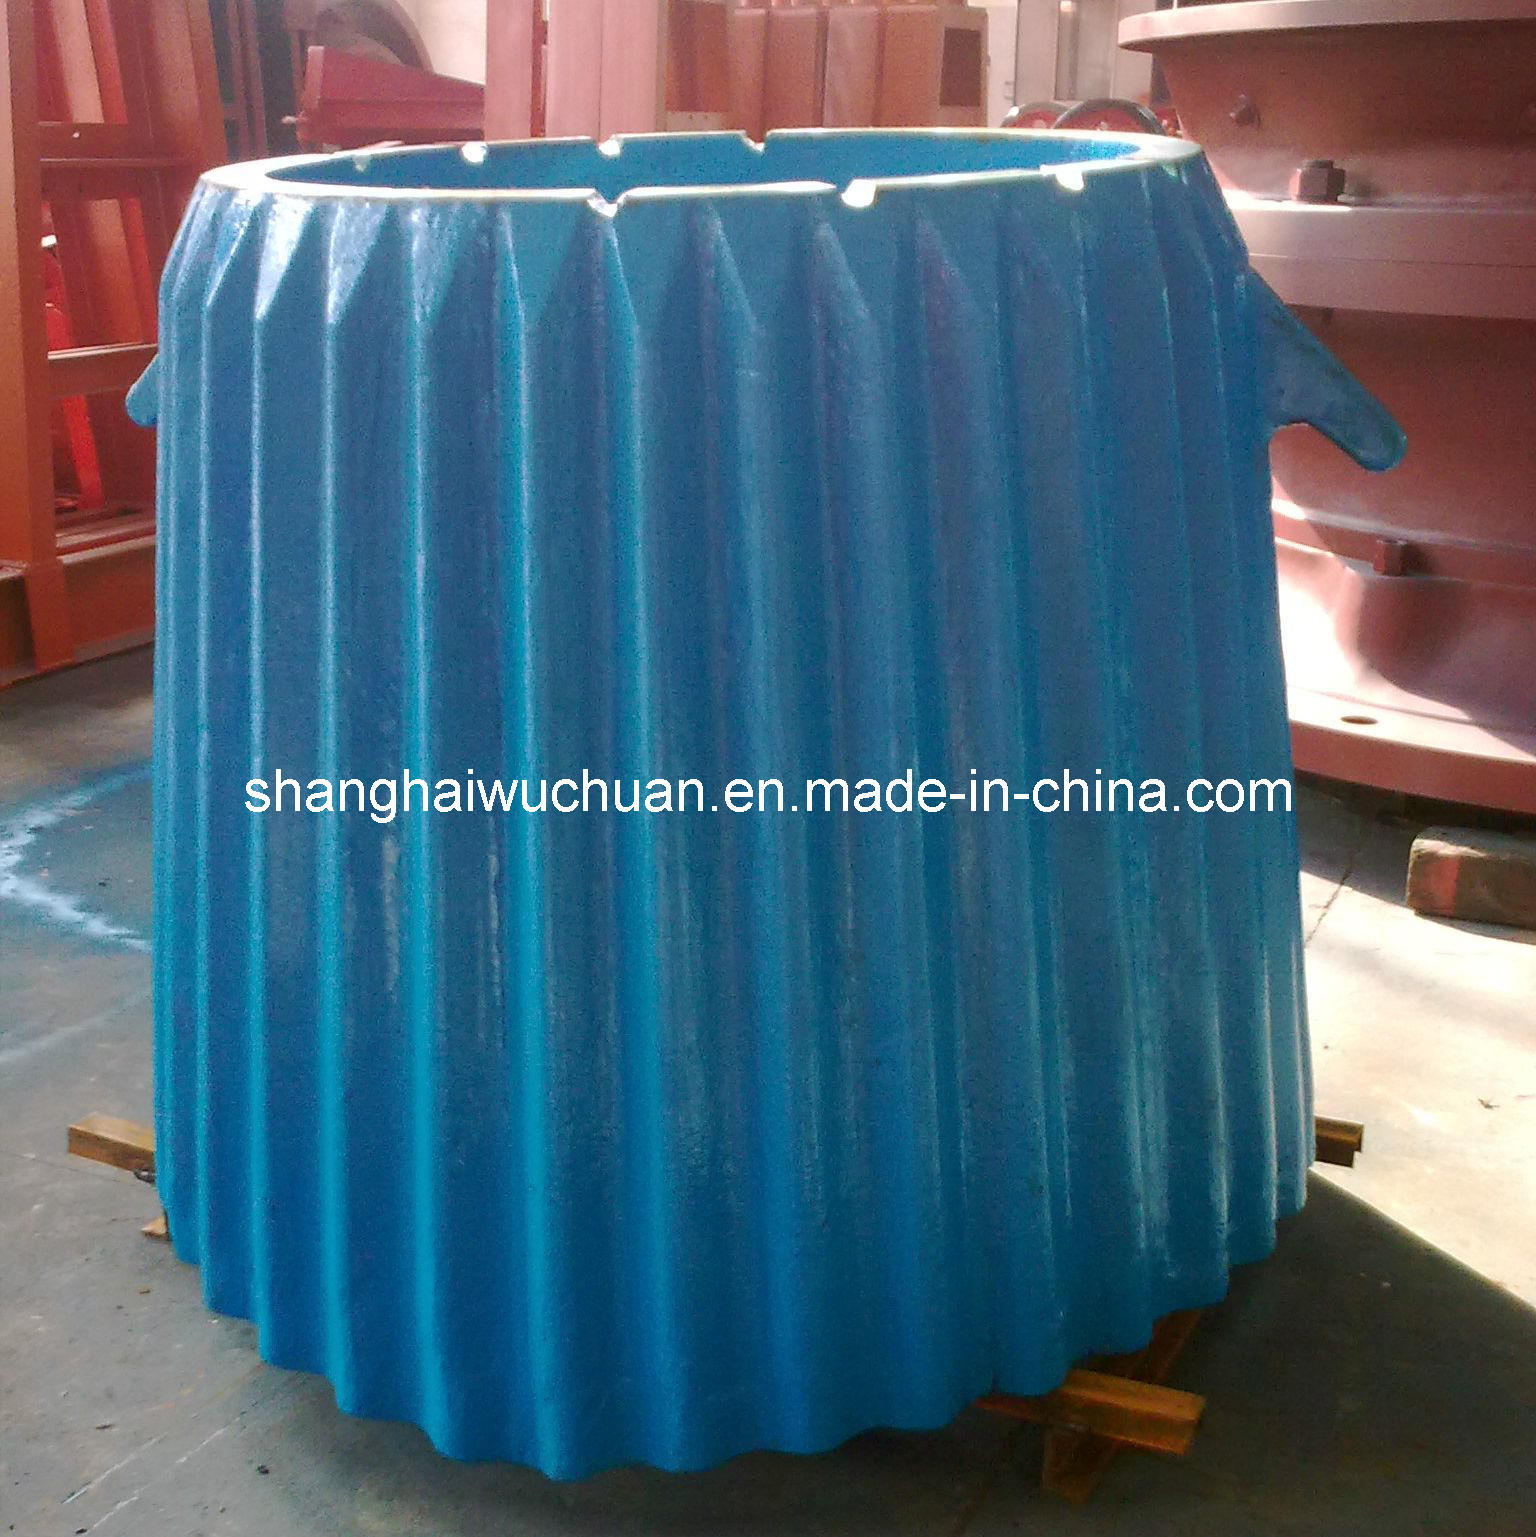 Manganese Parts for Gyratory Crusher